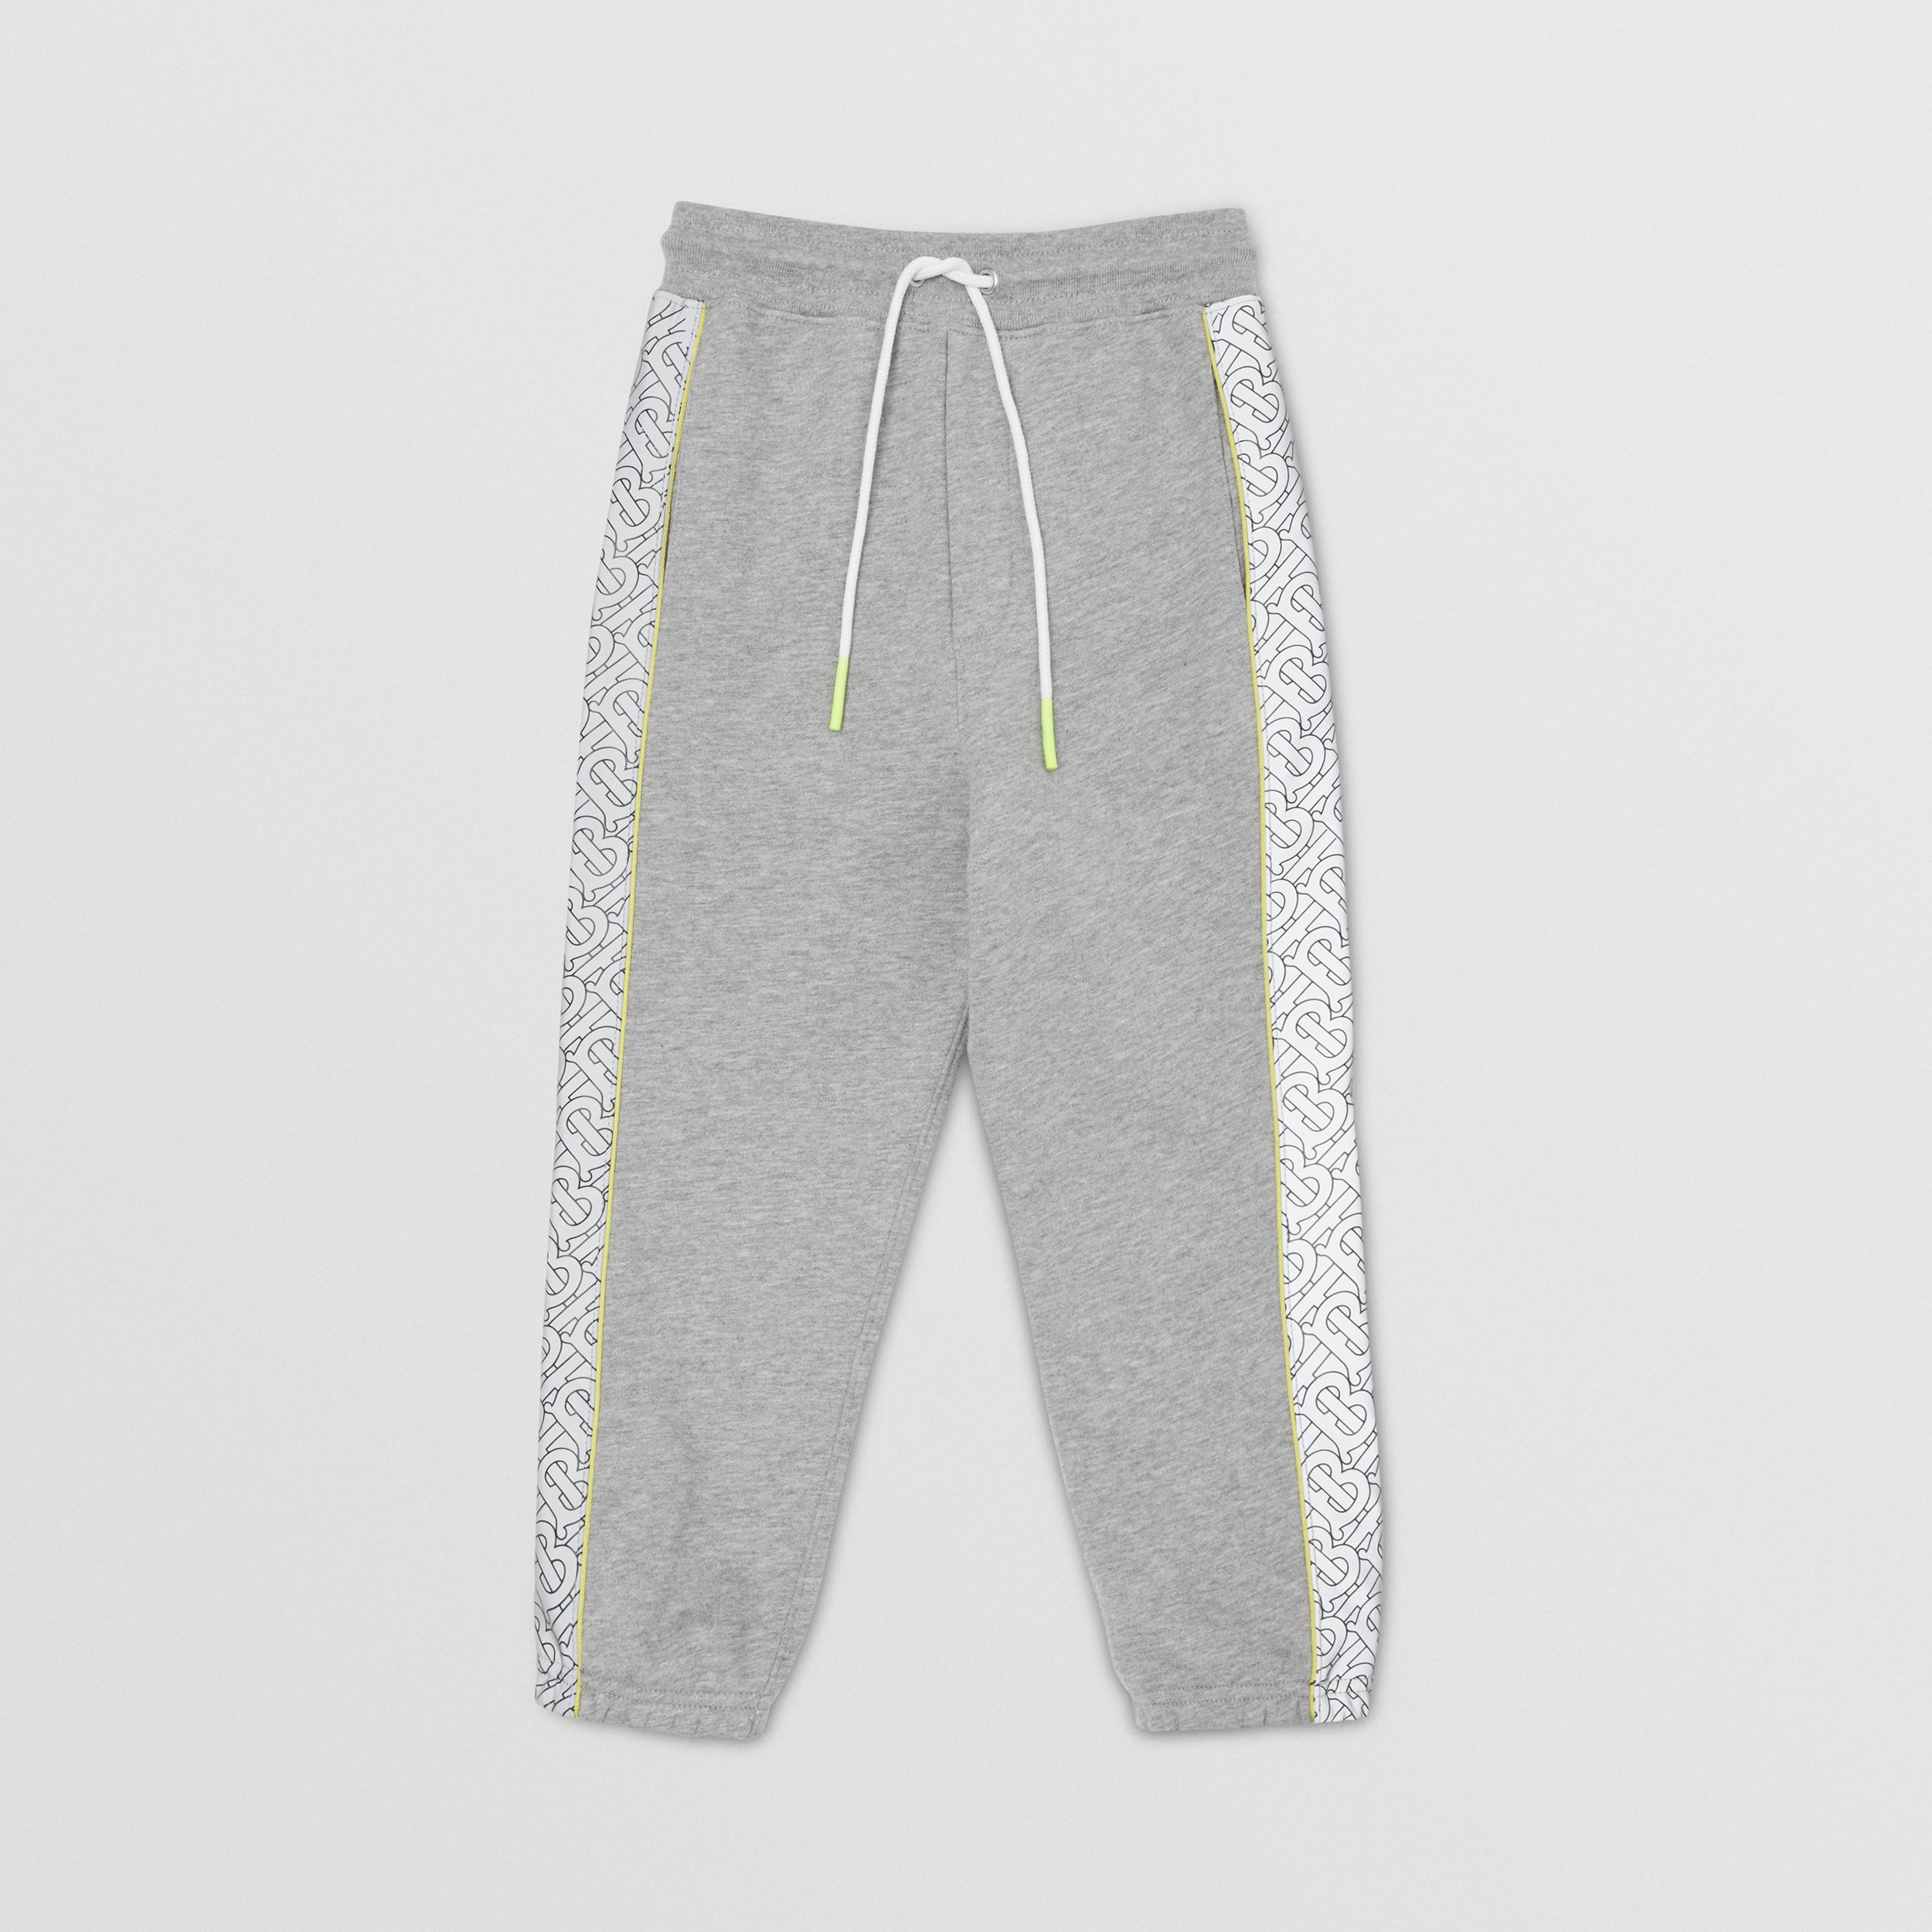 Monogram Print Panel Cotton Jogging Pants in Grey Melange | Burberry - 1